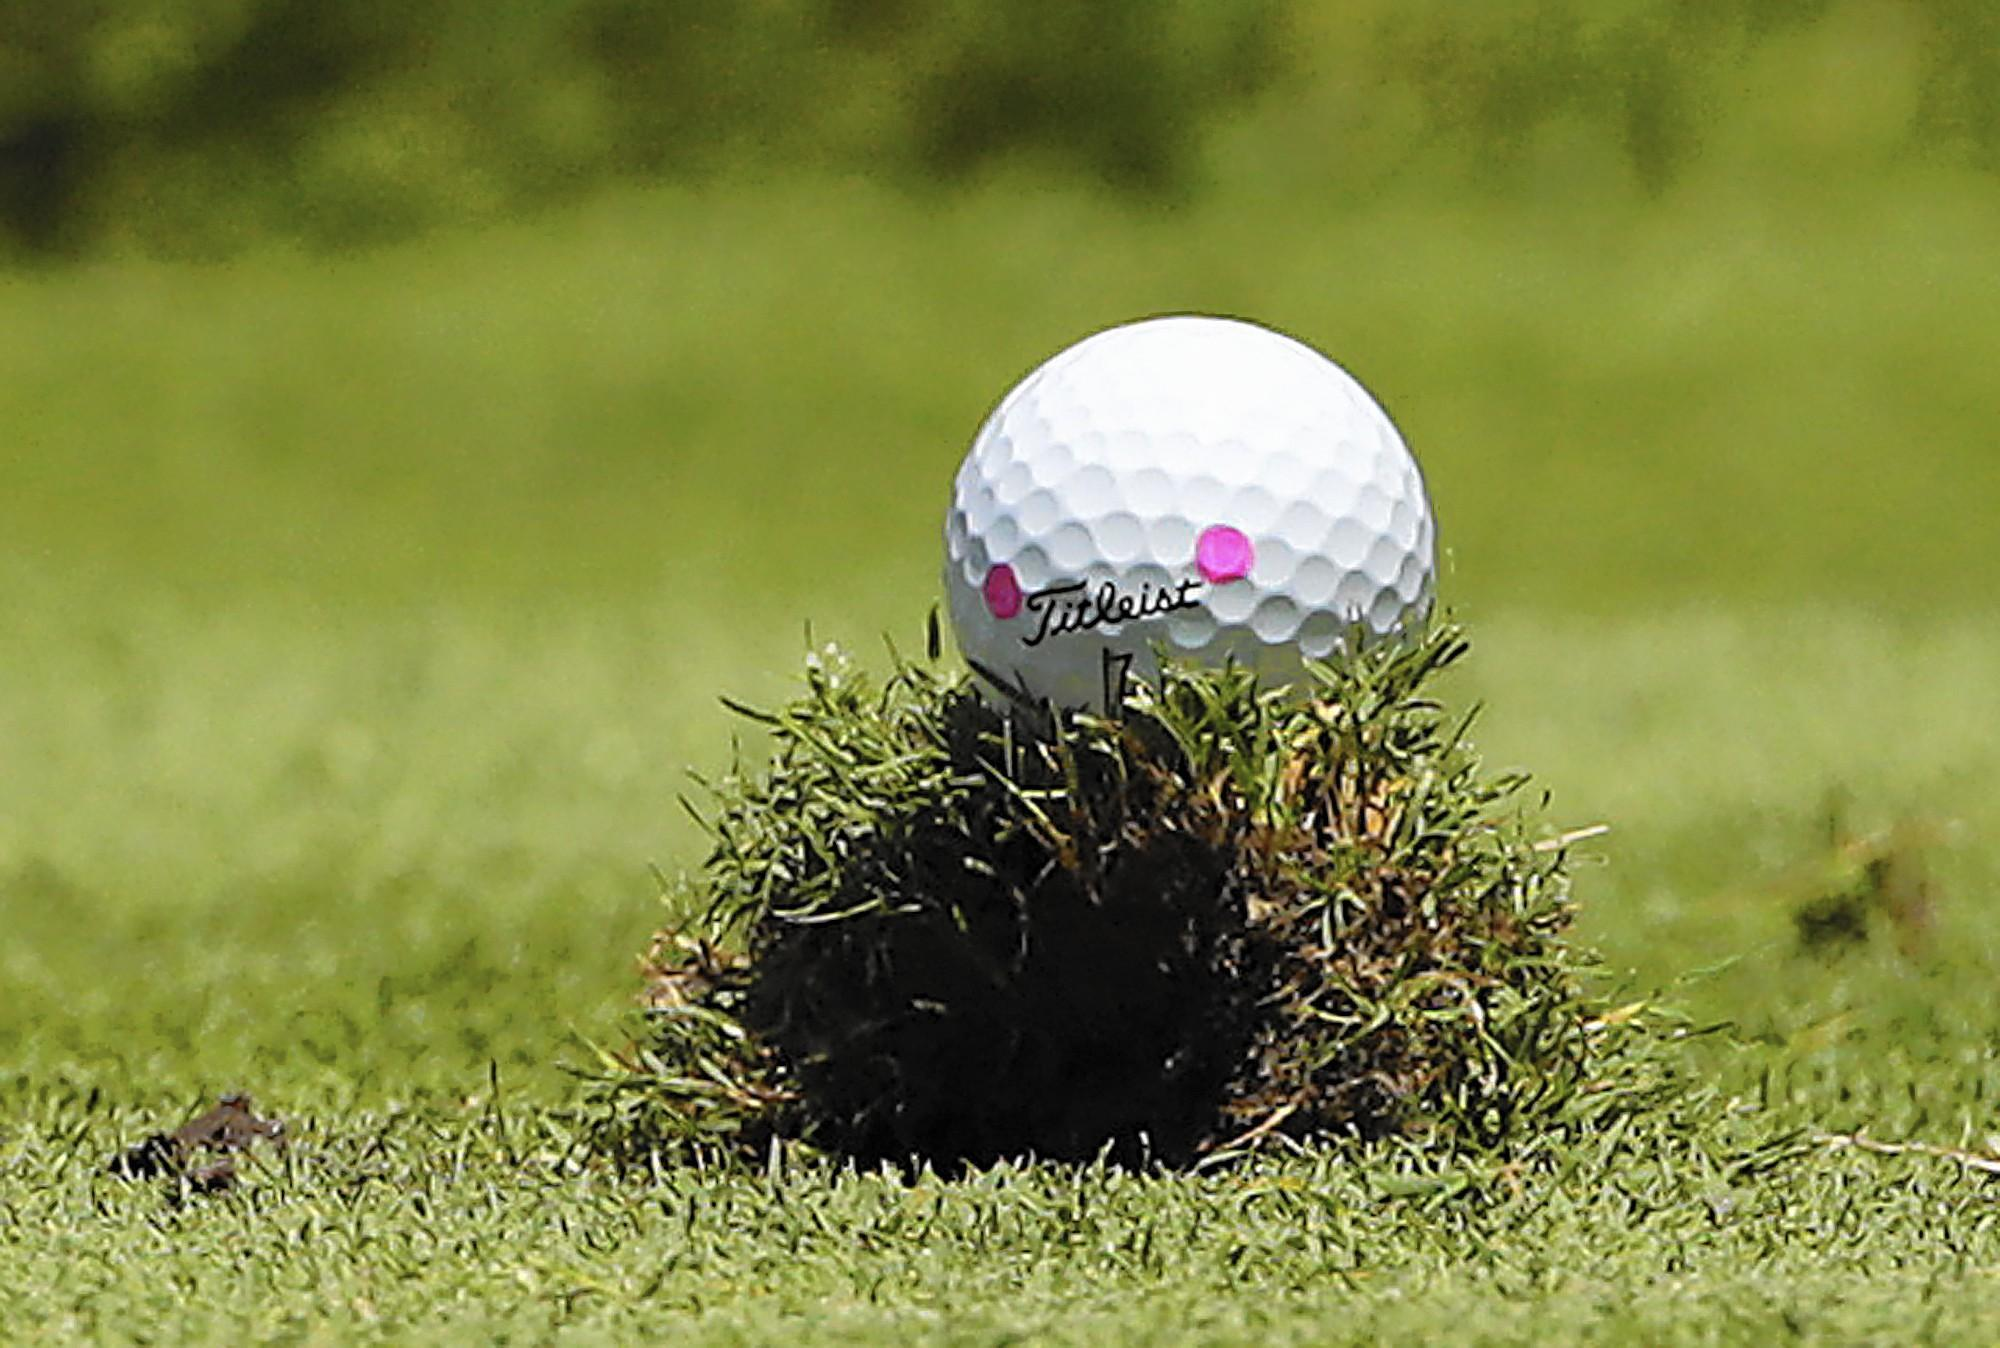 Morgan Hill Golf Course fined $1,000 in dispute over ...